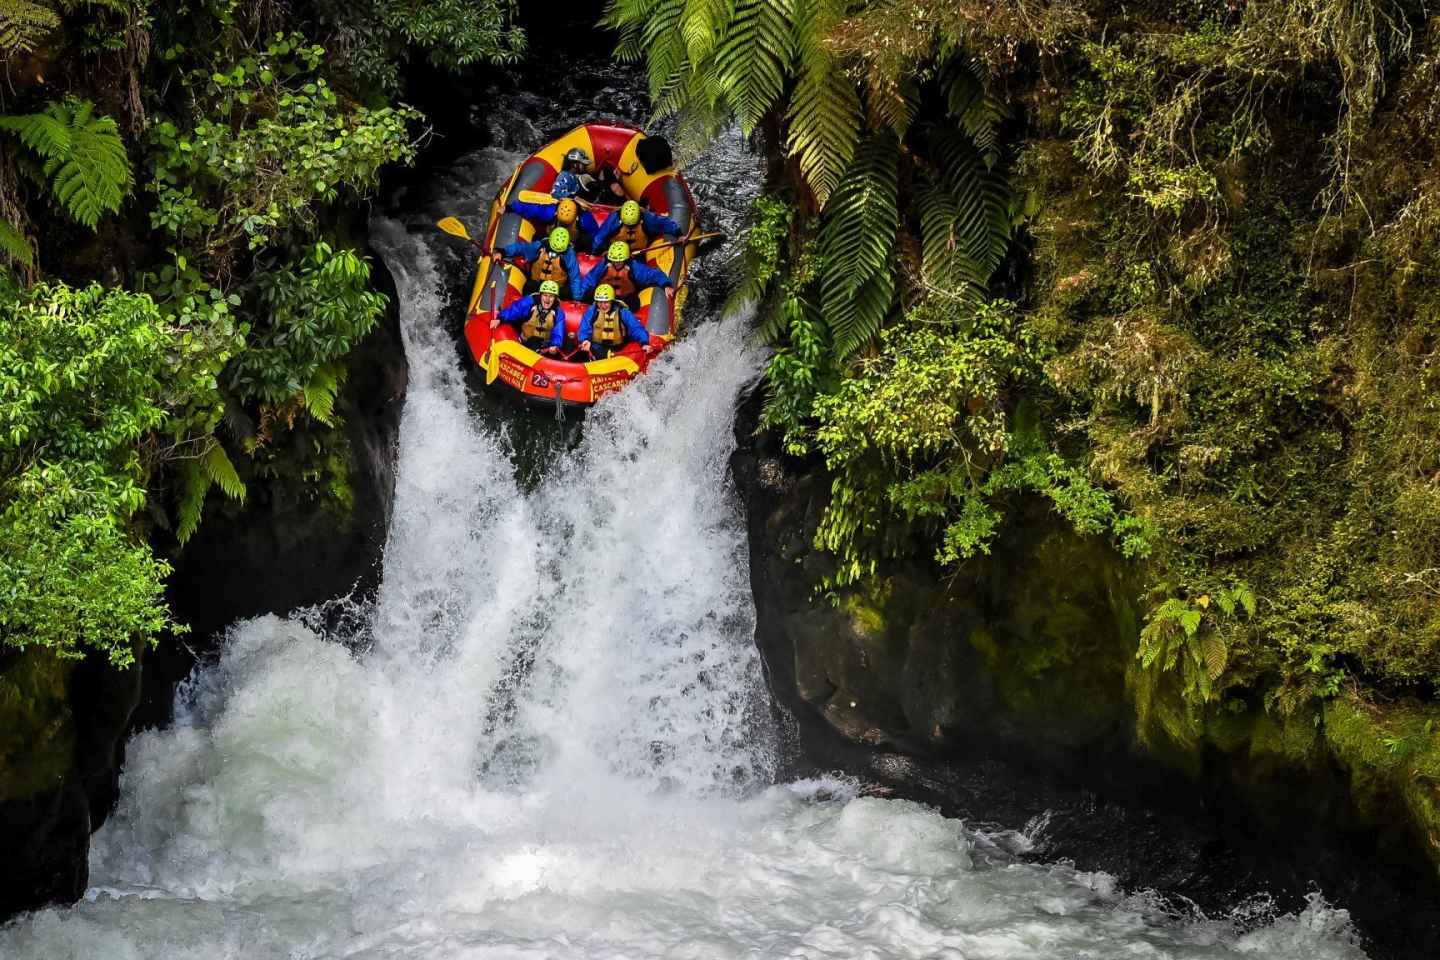 rafting in new zealand   enjoy a recreational time at kaituna river and tutea falls whitewater